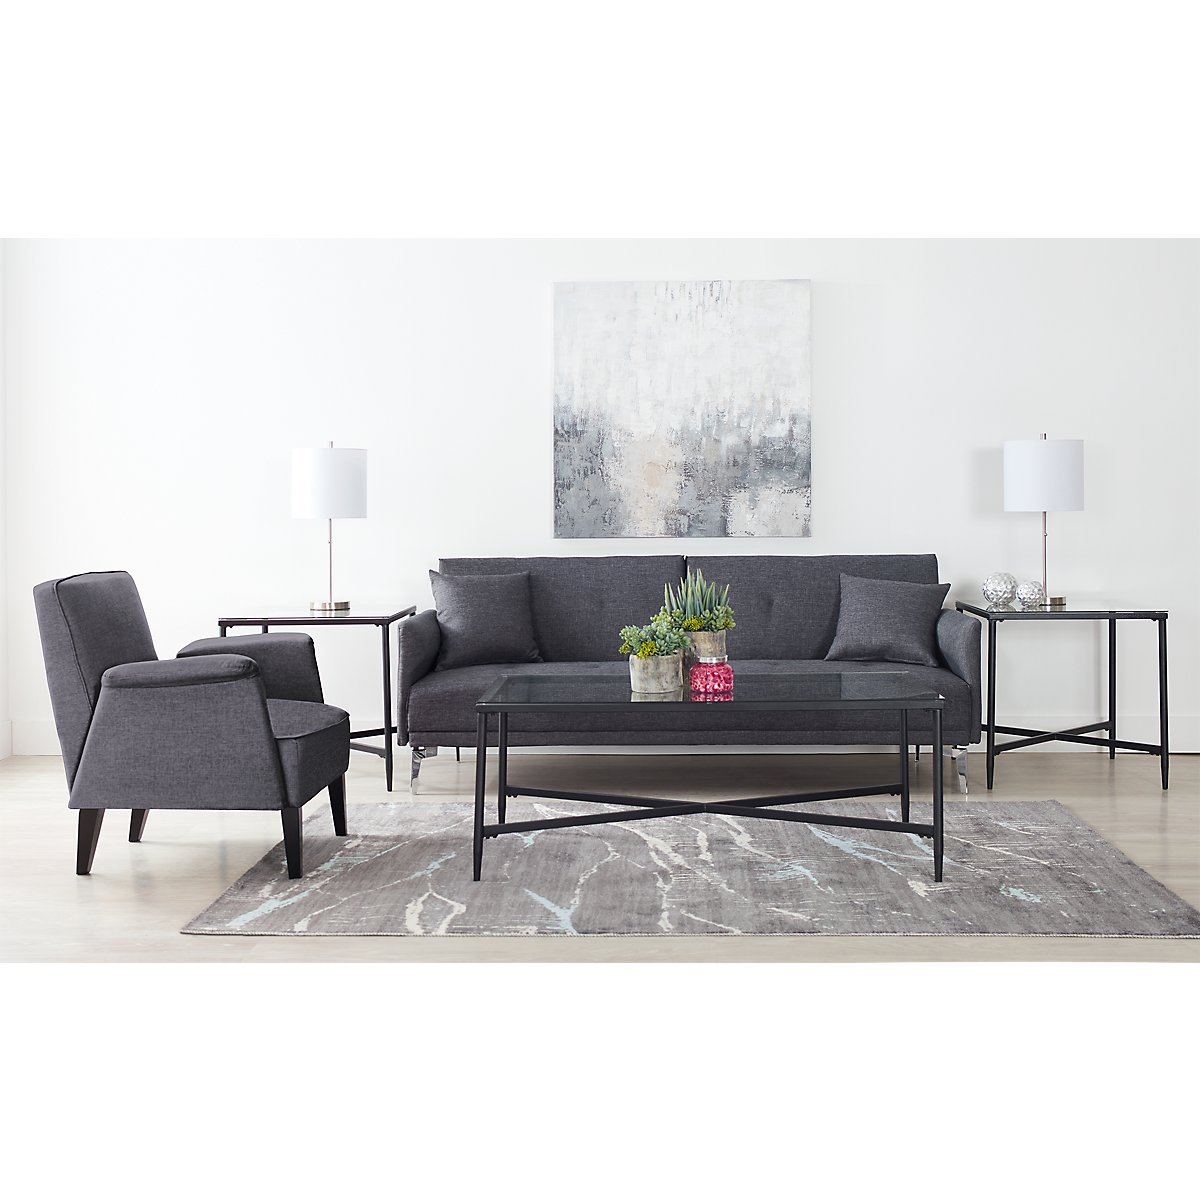 Amani Dark Gray Sofa Futon: Living Room Sofas & Couches